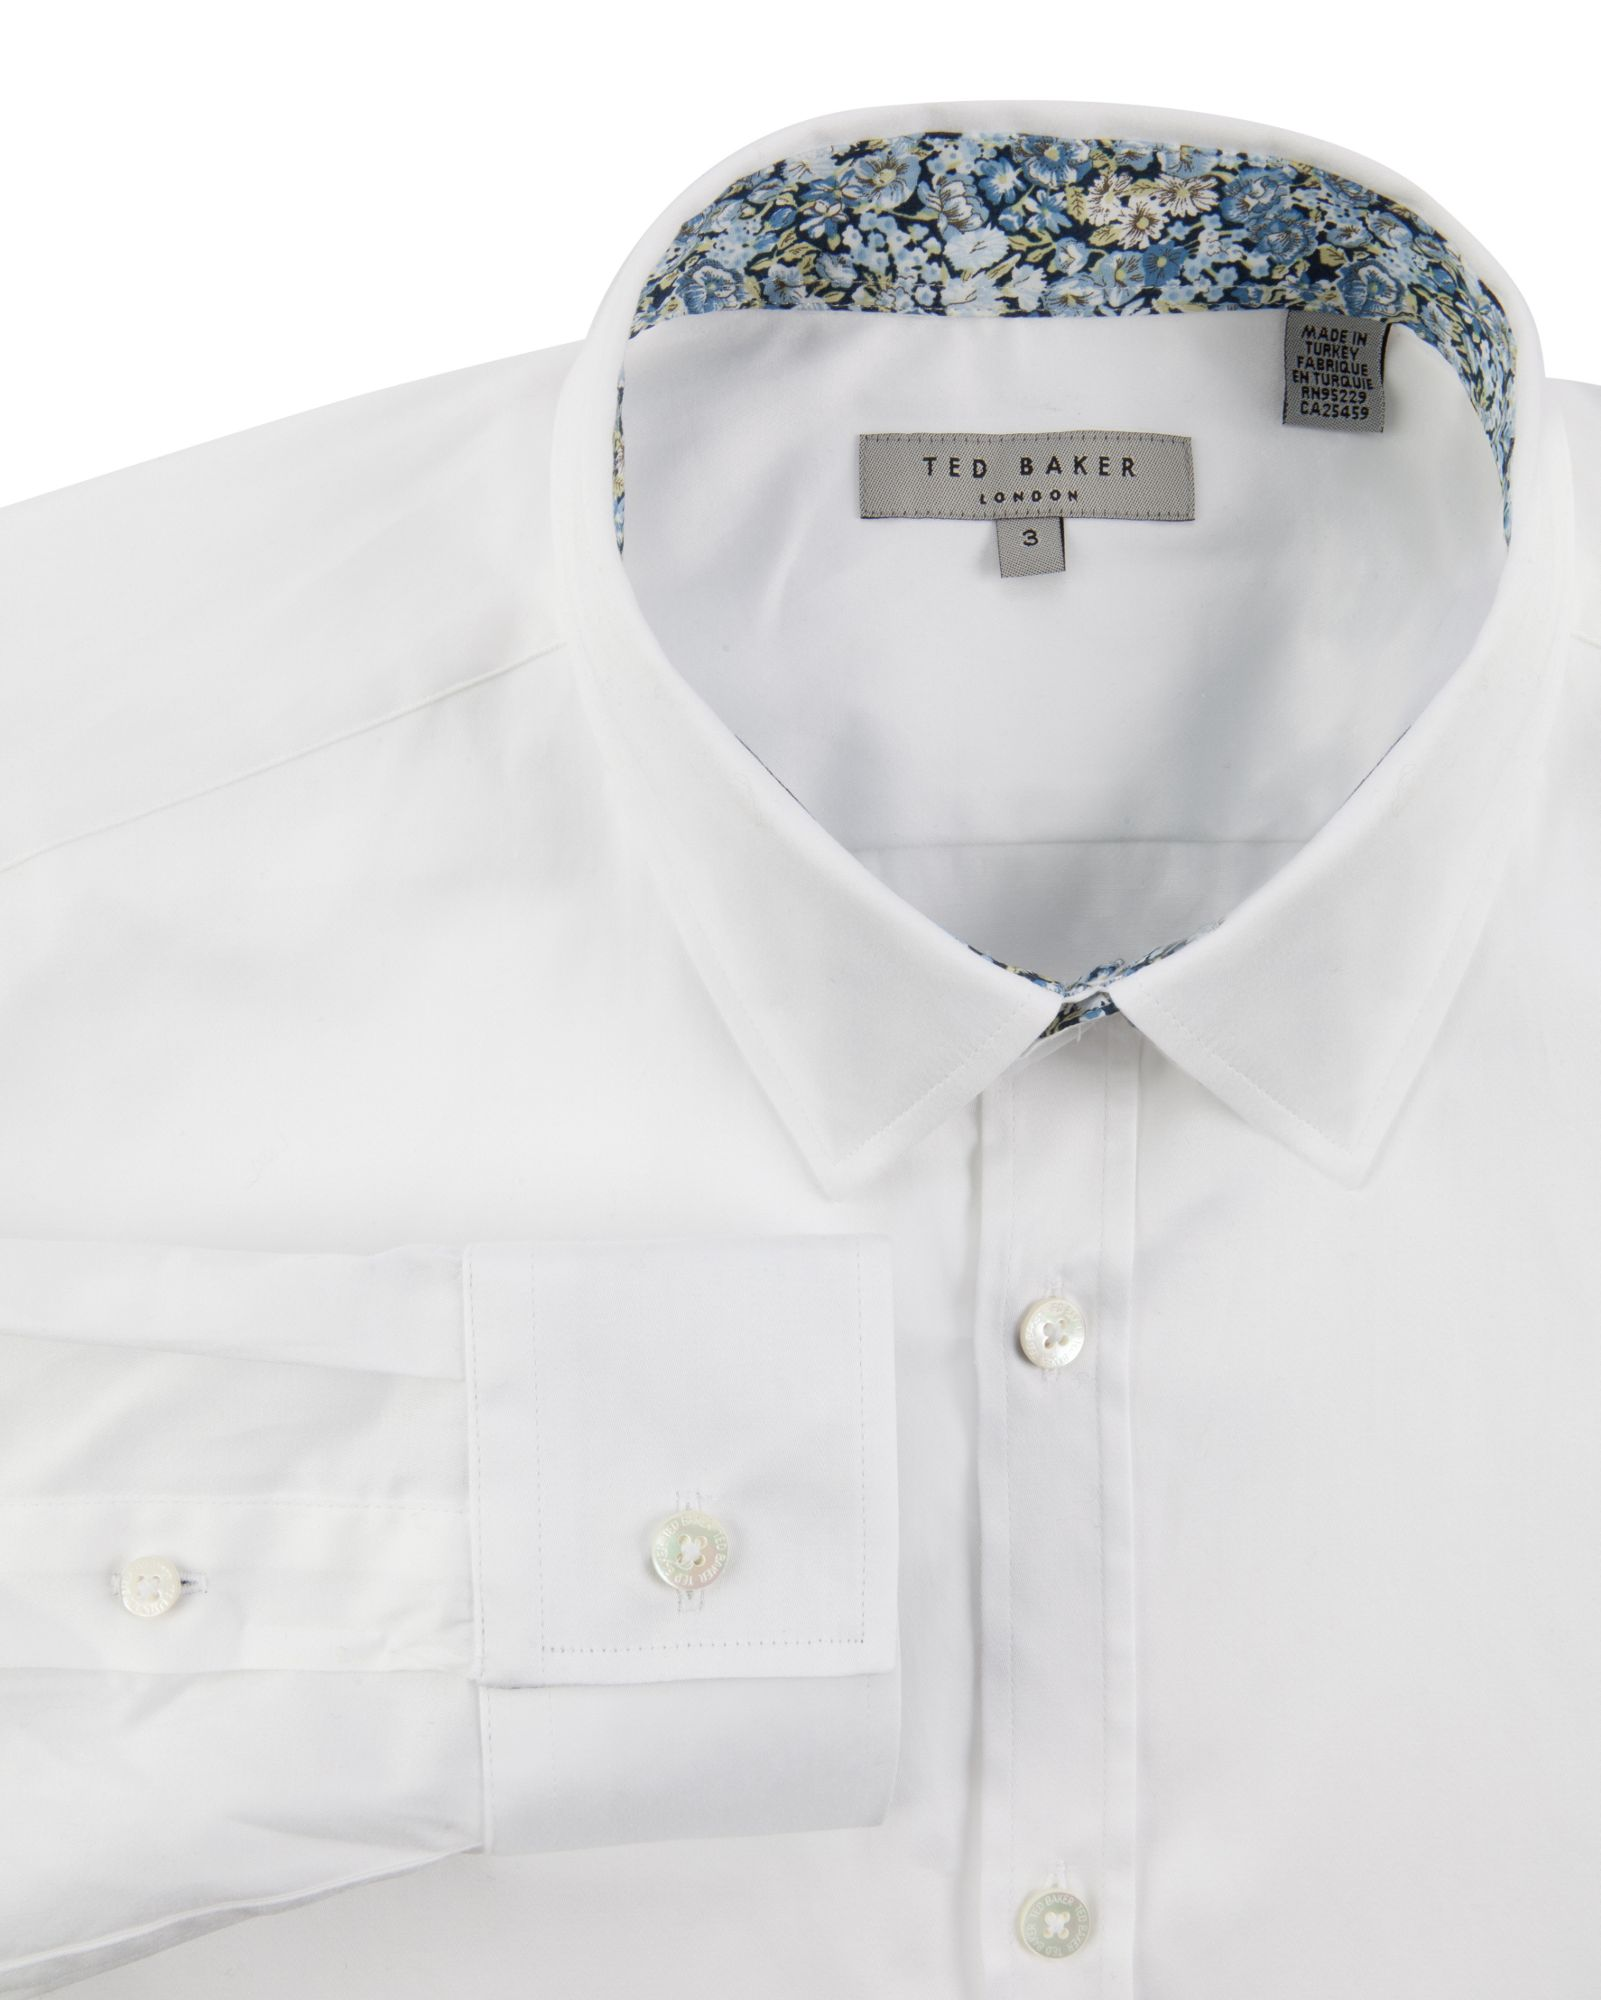 e885f9cf1 Lyst - Ted Baker Whestie Satin Finish Shirt in White for Men